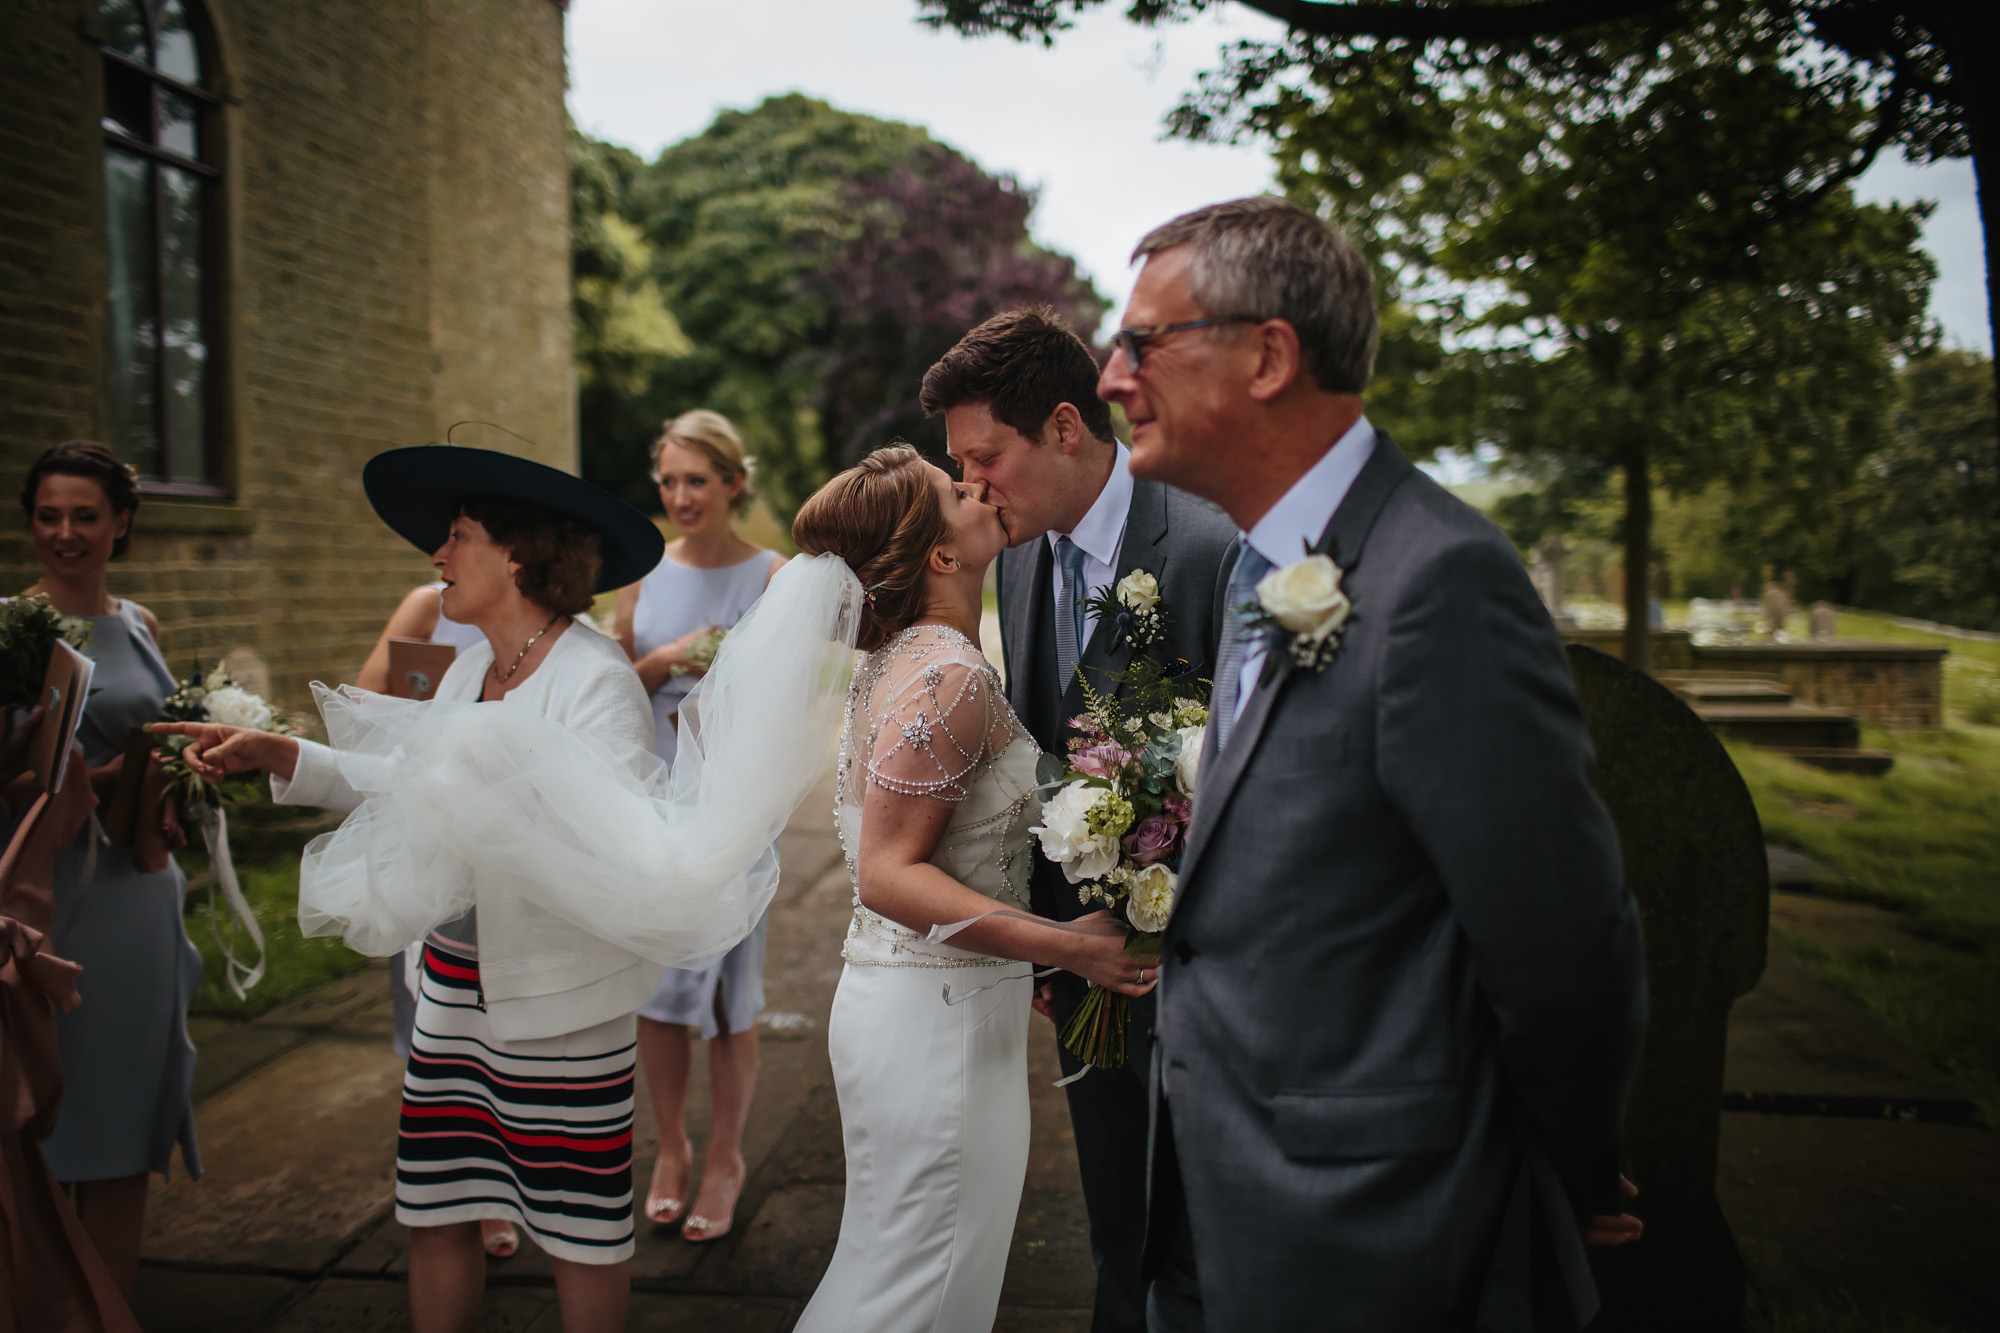 Bride and groom kissing in front of their families